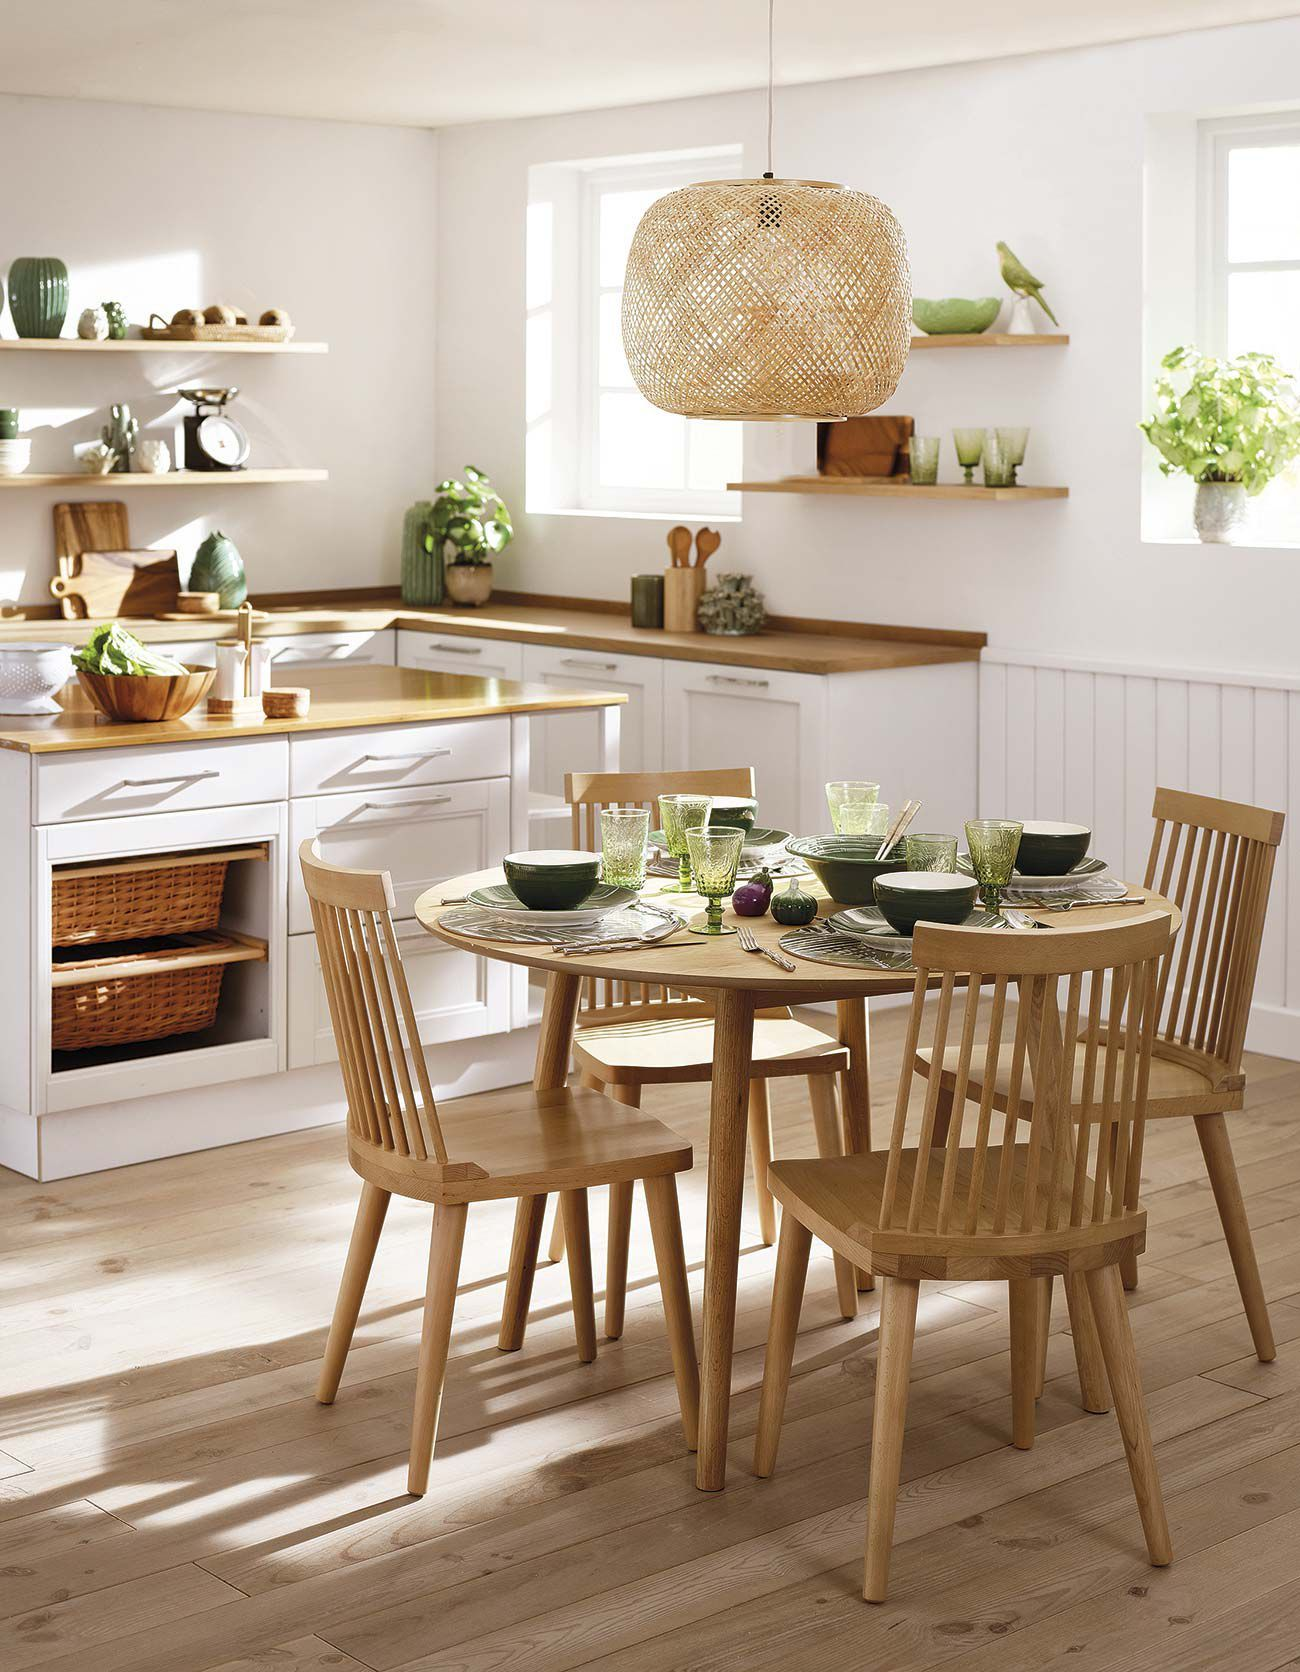 kitchen, wooden floor, white wall, white cabinet, wooden counter top, rattan top, wooden open shelves, wooden dining set